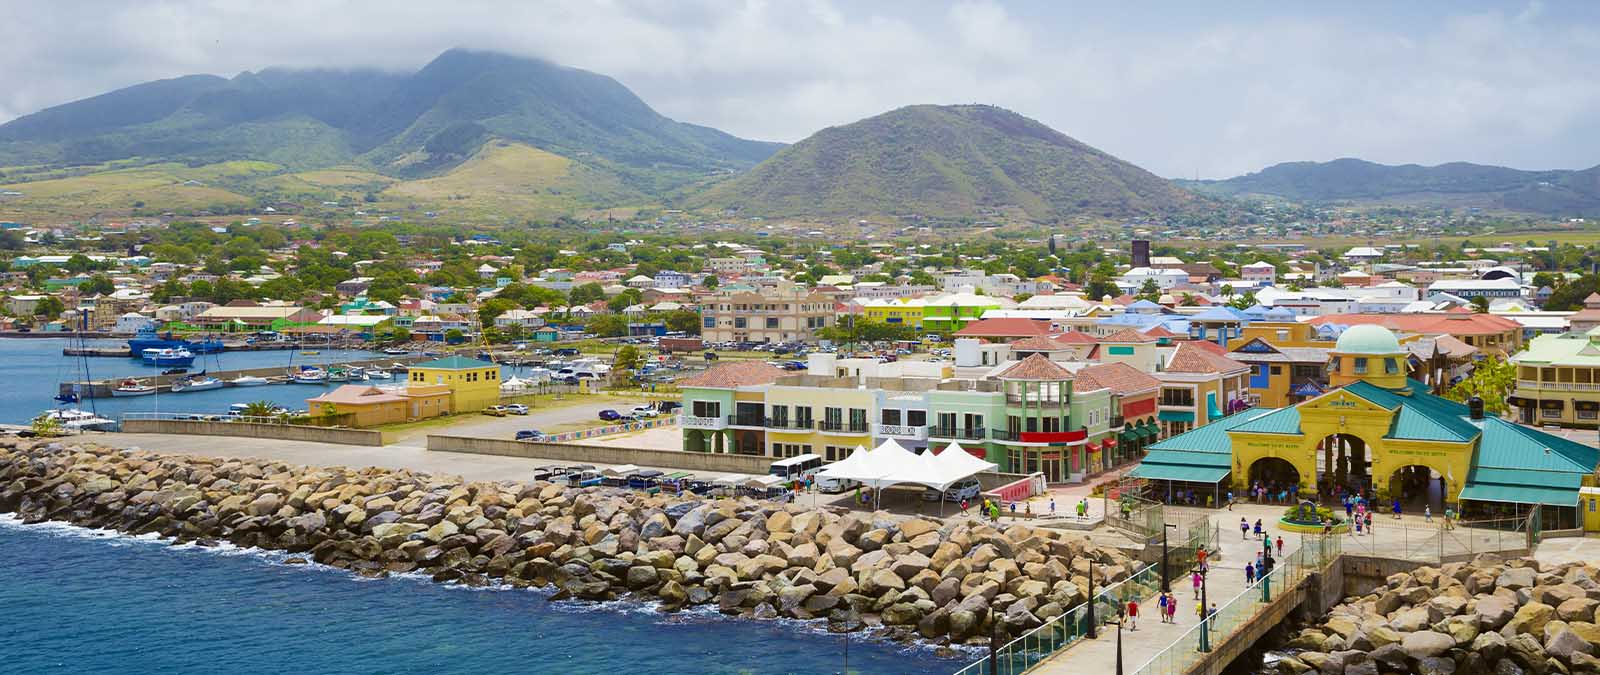 As a citizen of St Kitts and Nevis, you can settle there and enjoy the highest quality Caribbean lifestyle